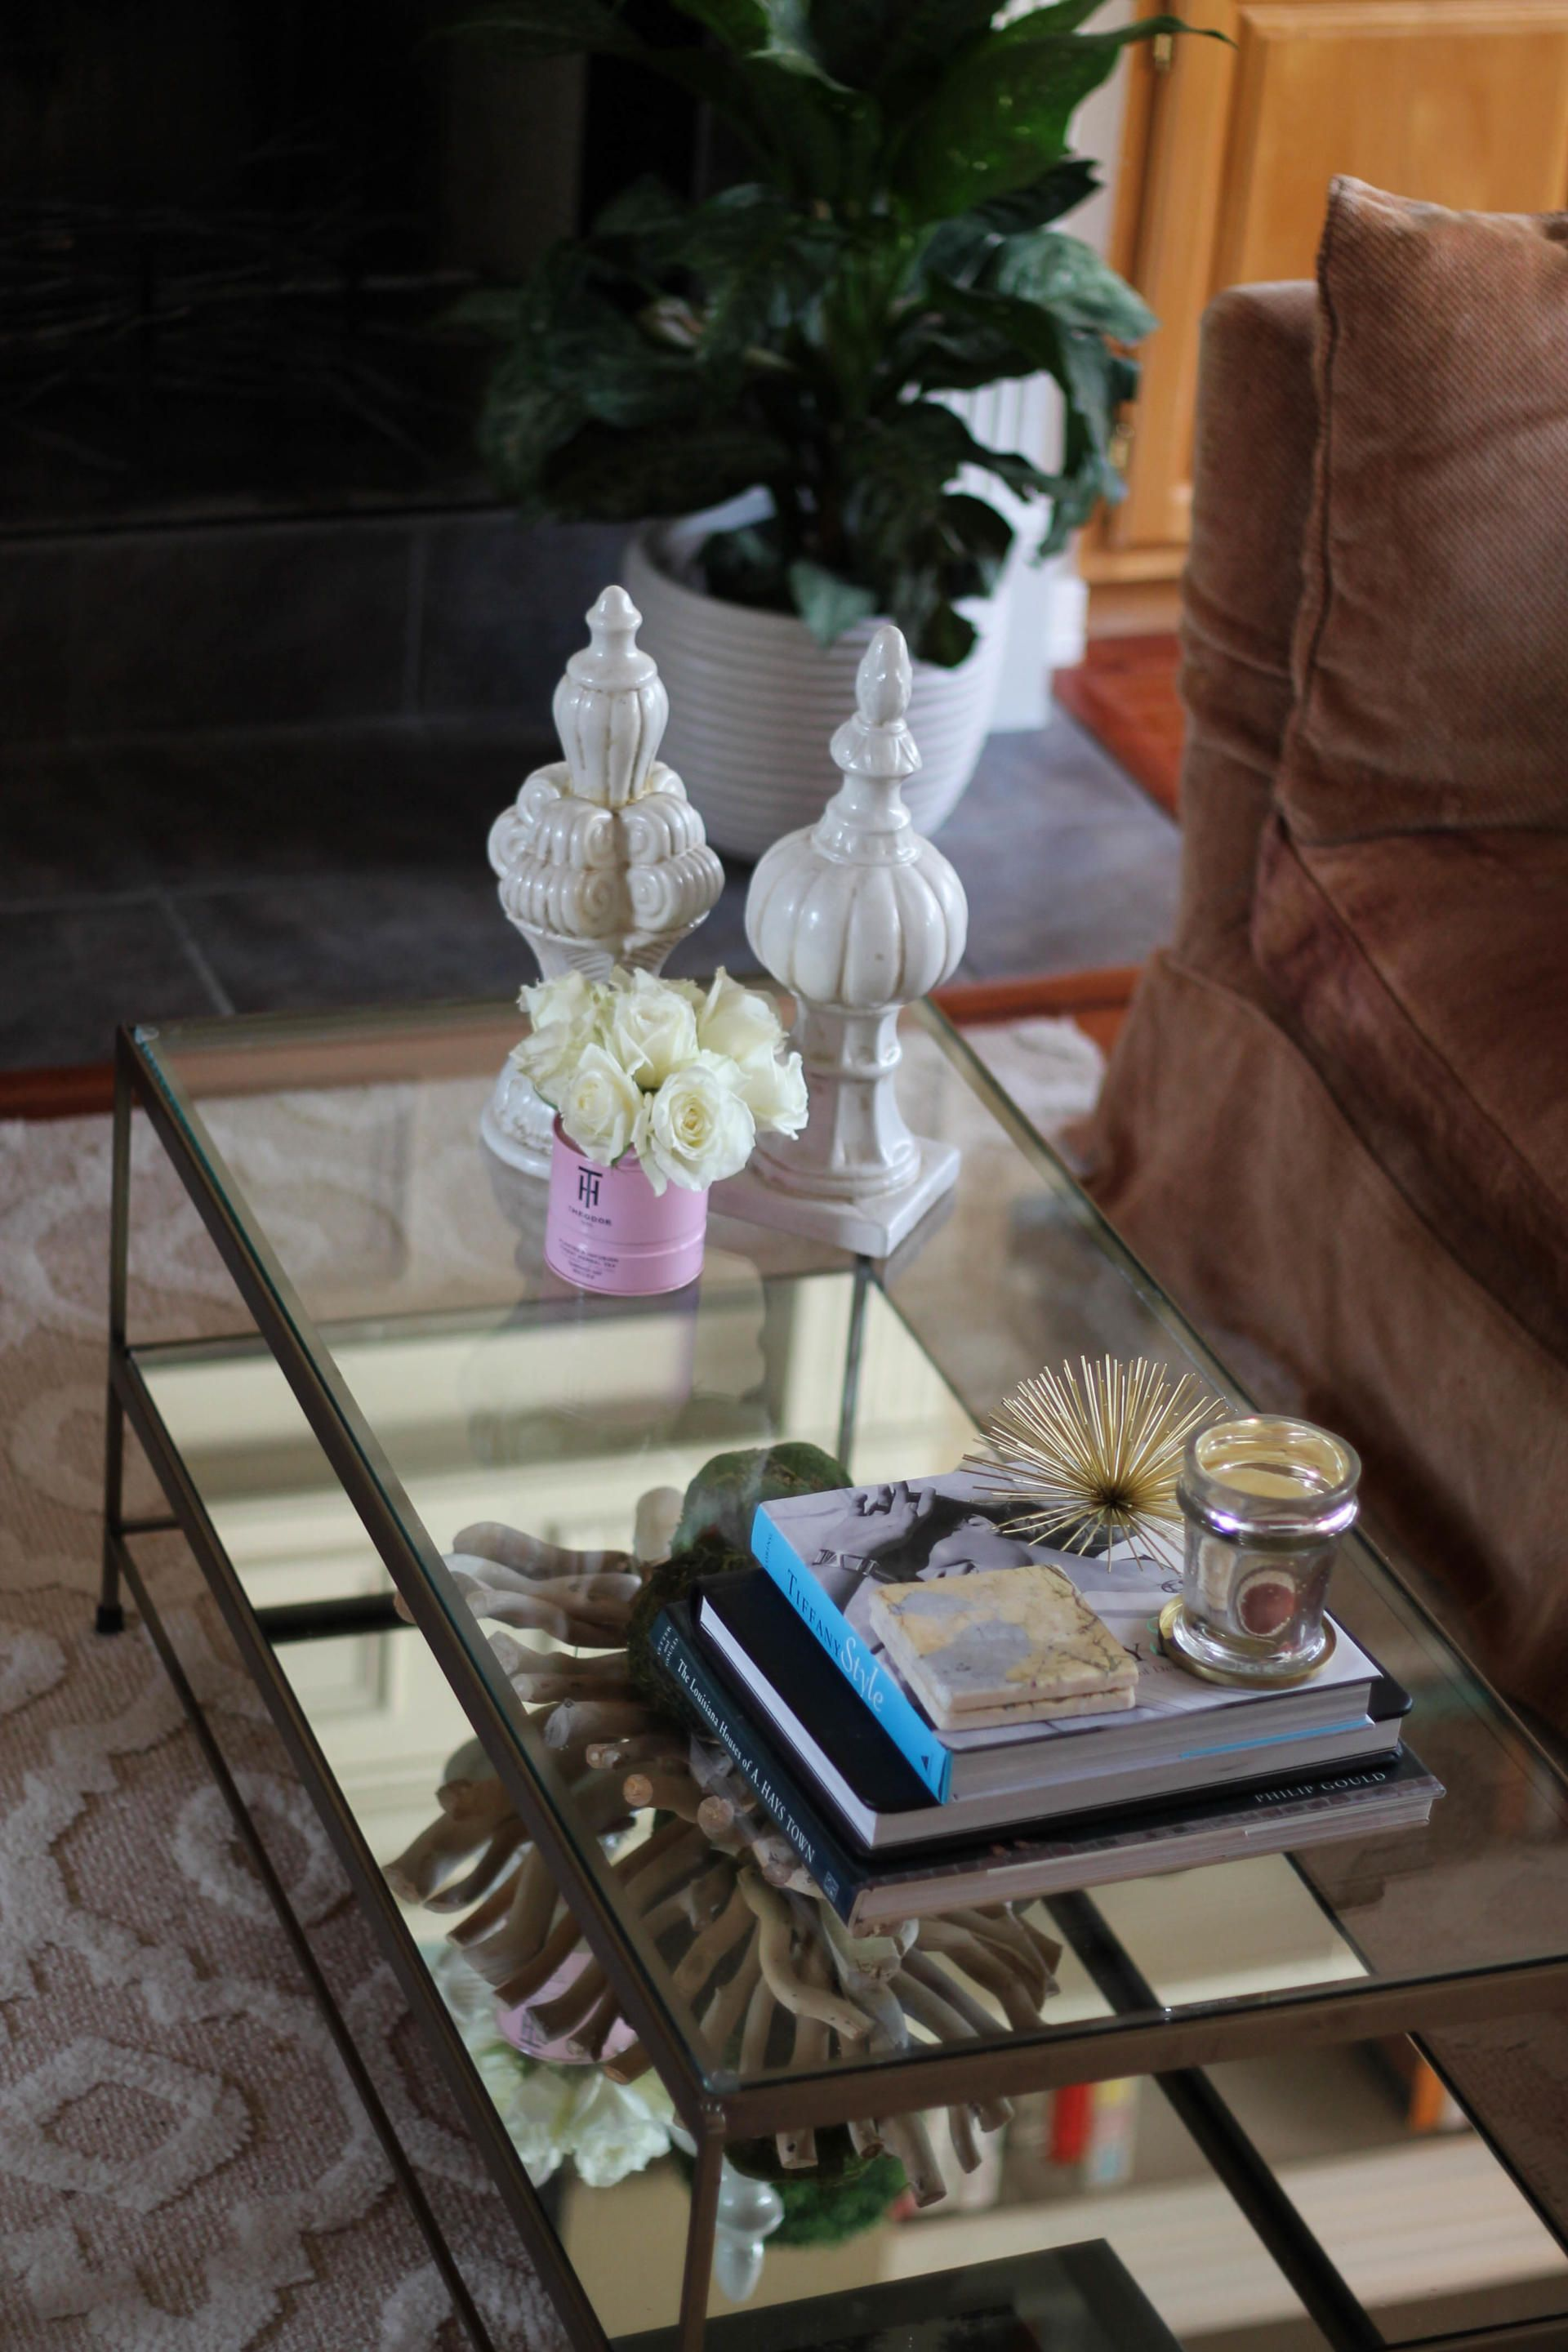 Styling A Glass Coffee Table Style Waltz Glass Coffee Table Styling Glass Coffee Table Decor Glass Coffee Table [ 2880 x 1920 Pixel ]